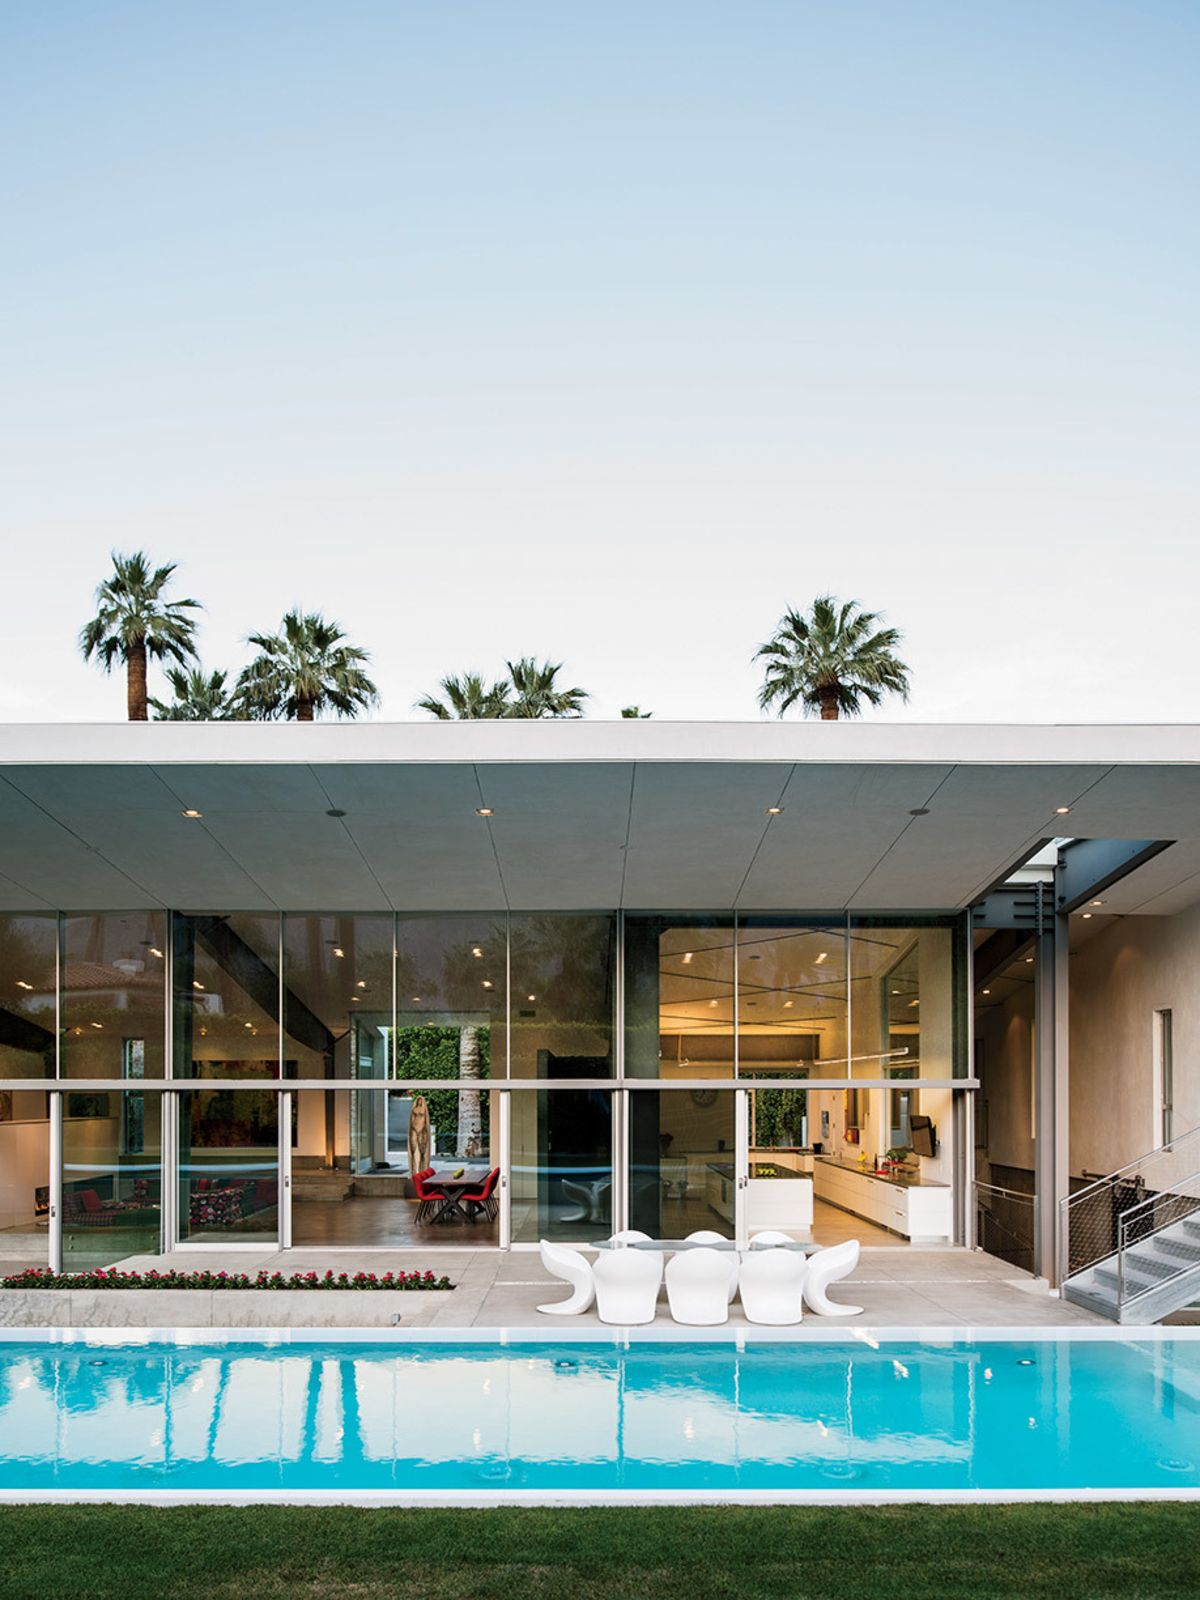 Best Kitchen Gallery: An Energy Efficient Hybrid Prefab Keeps Cool In The Palm Springs of Efficient Desert Home Designs on rachelxblog.com